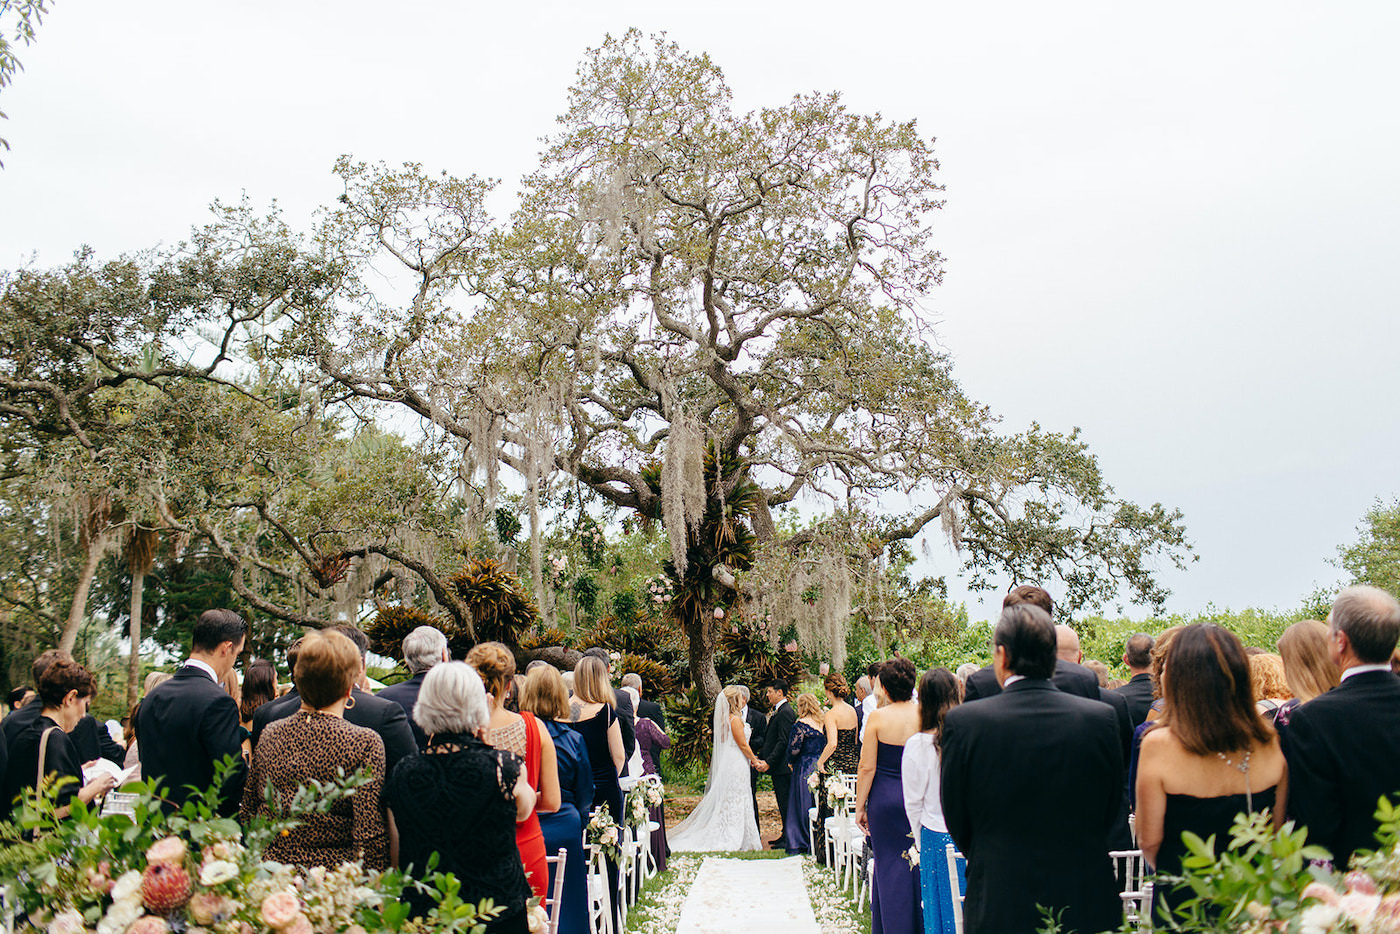 Romantic Florida Wedding Outside in Garden Inspired Ceremony Under Large Tree with Hanging Moss   Sarasota Wedding Planner NK Weddings   Marie Selby Botanical Gardens